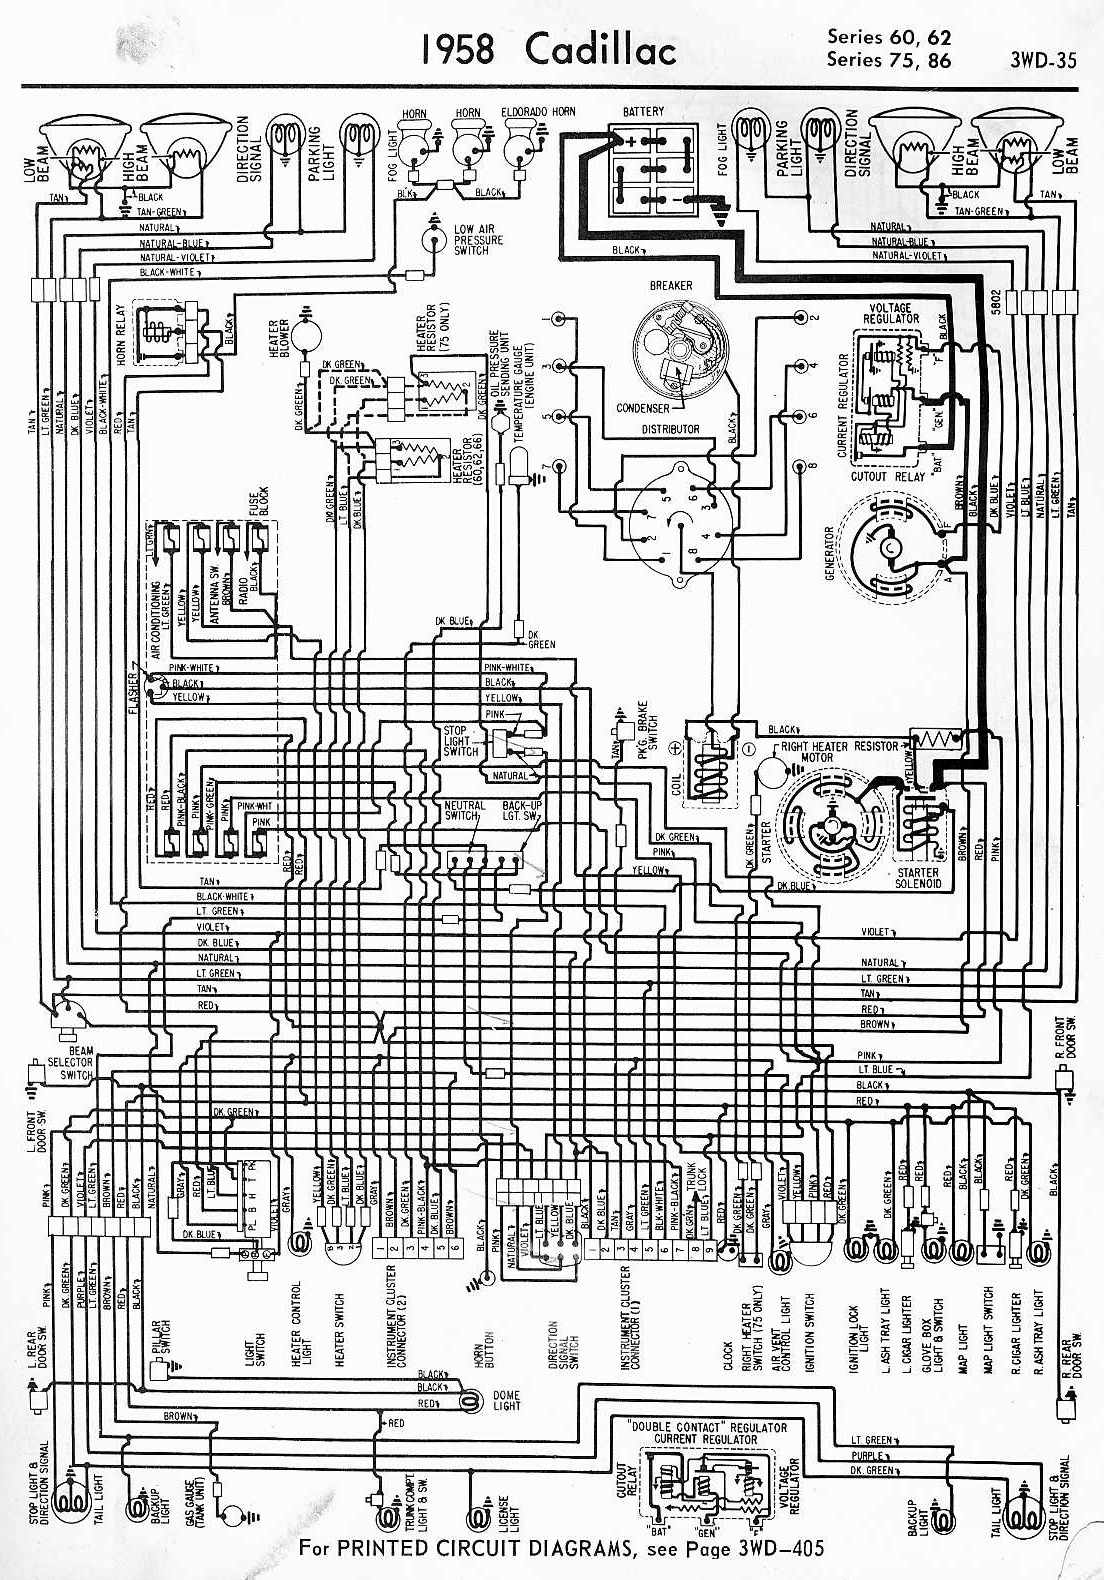 Fuse Diagram For 1993 Cadillac Deville List Of Schematic Circuit 1990 Brougham Box 1958 Power Seat Wiring Auto Electrical Rh Mit Edu Uk Bitoku Me